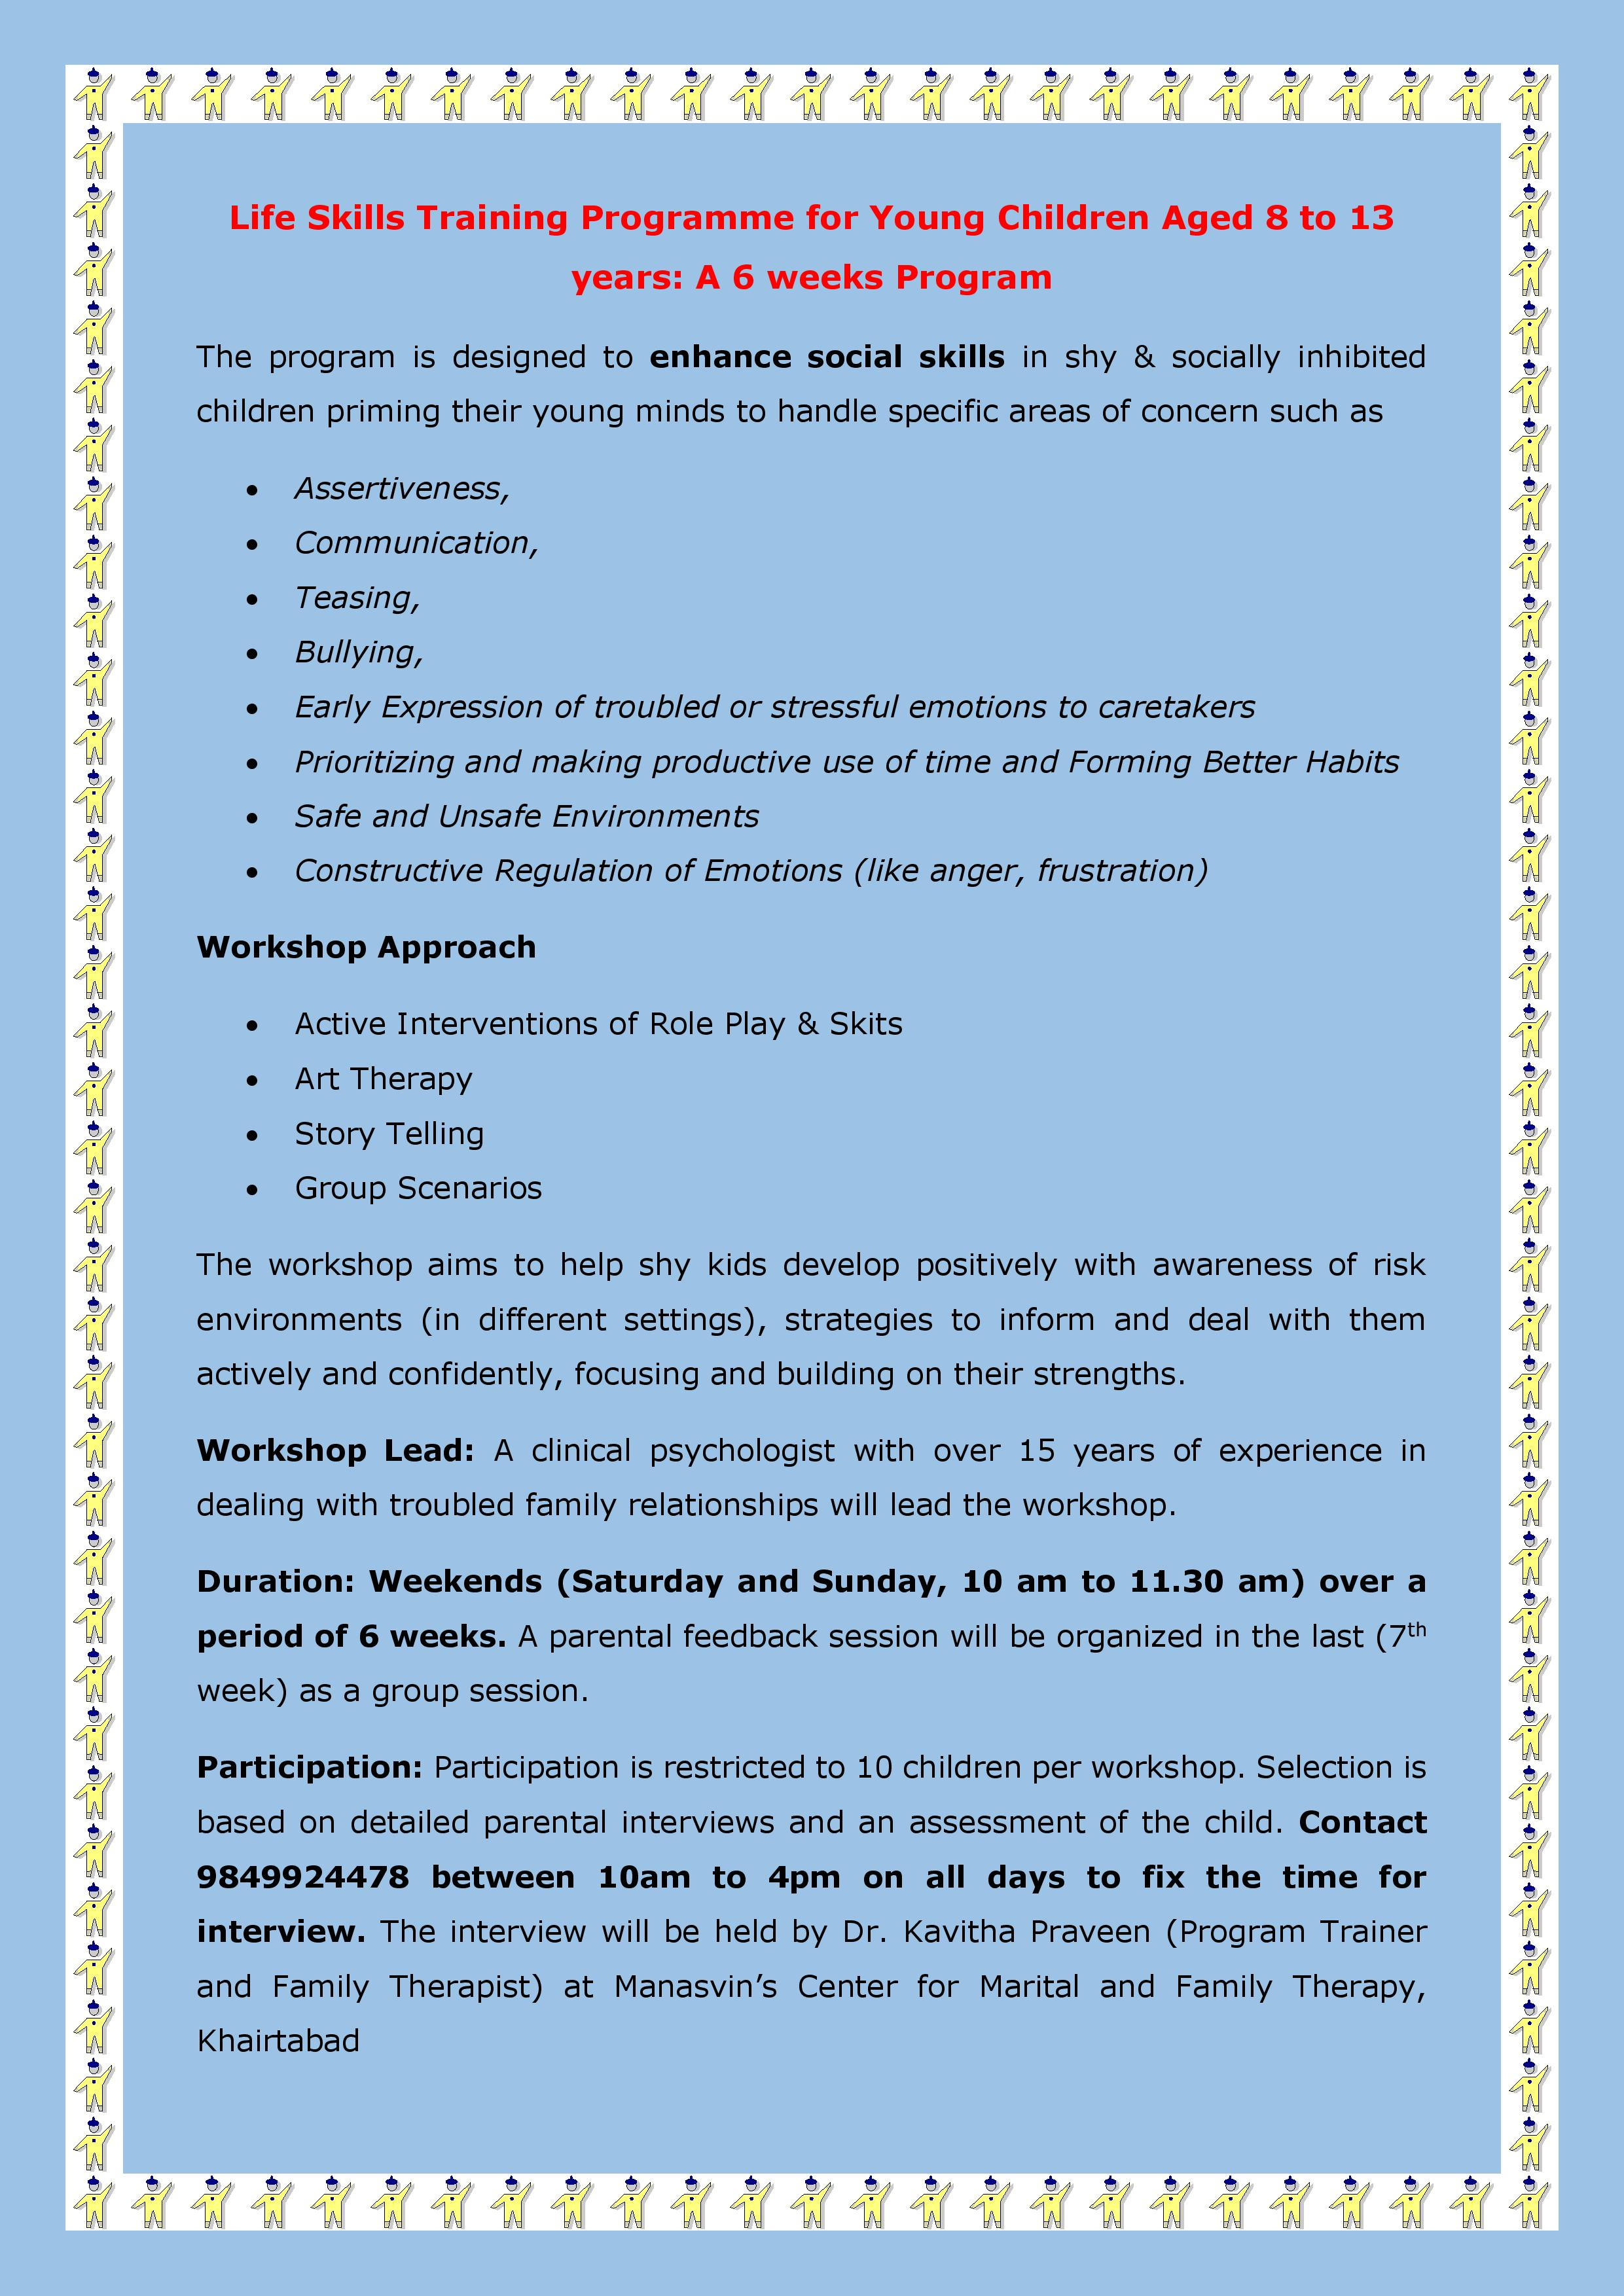 Life Skills Program For Young Children Aged 8 To 13 Years